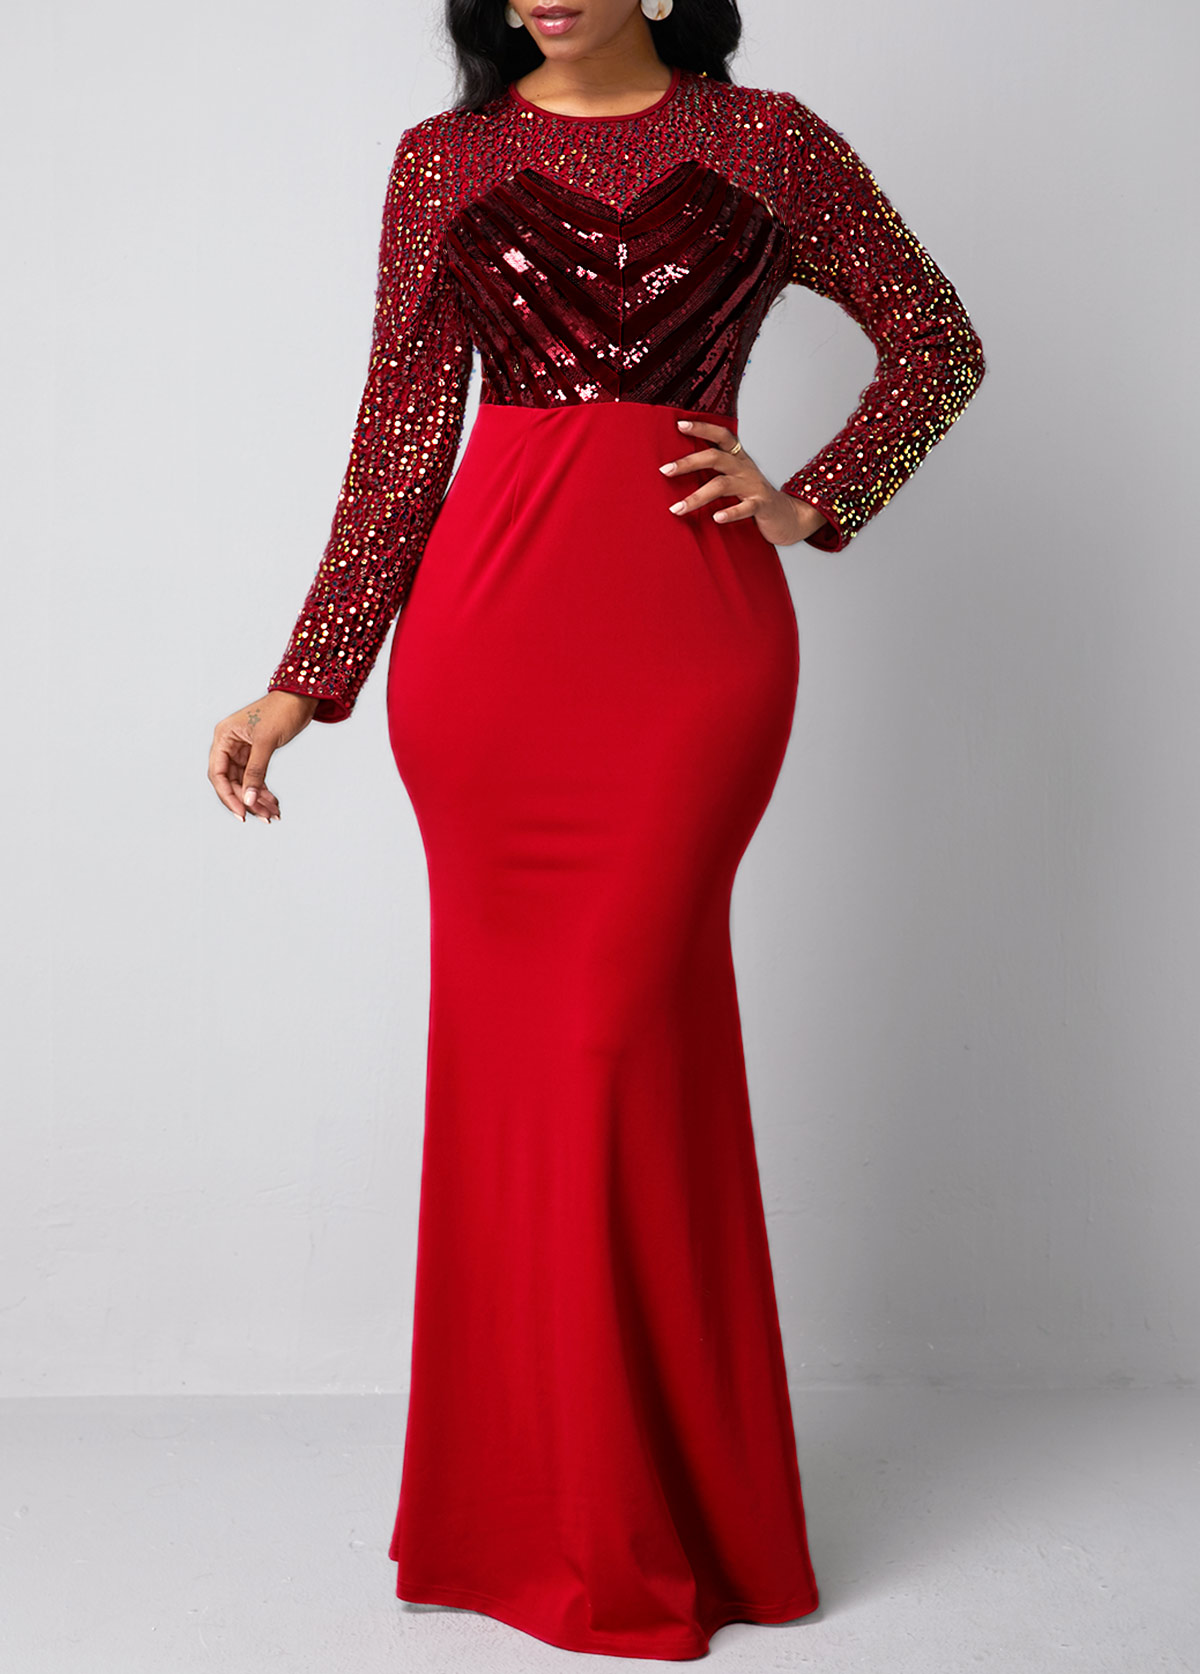 Sequin Detail Long Sleeve Red Mermaid Dress